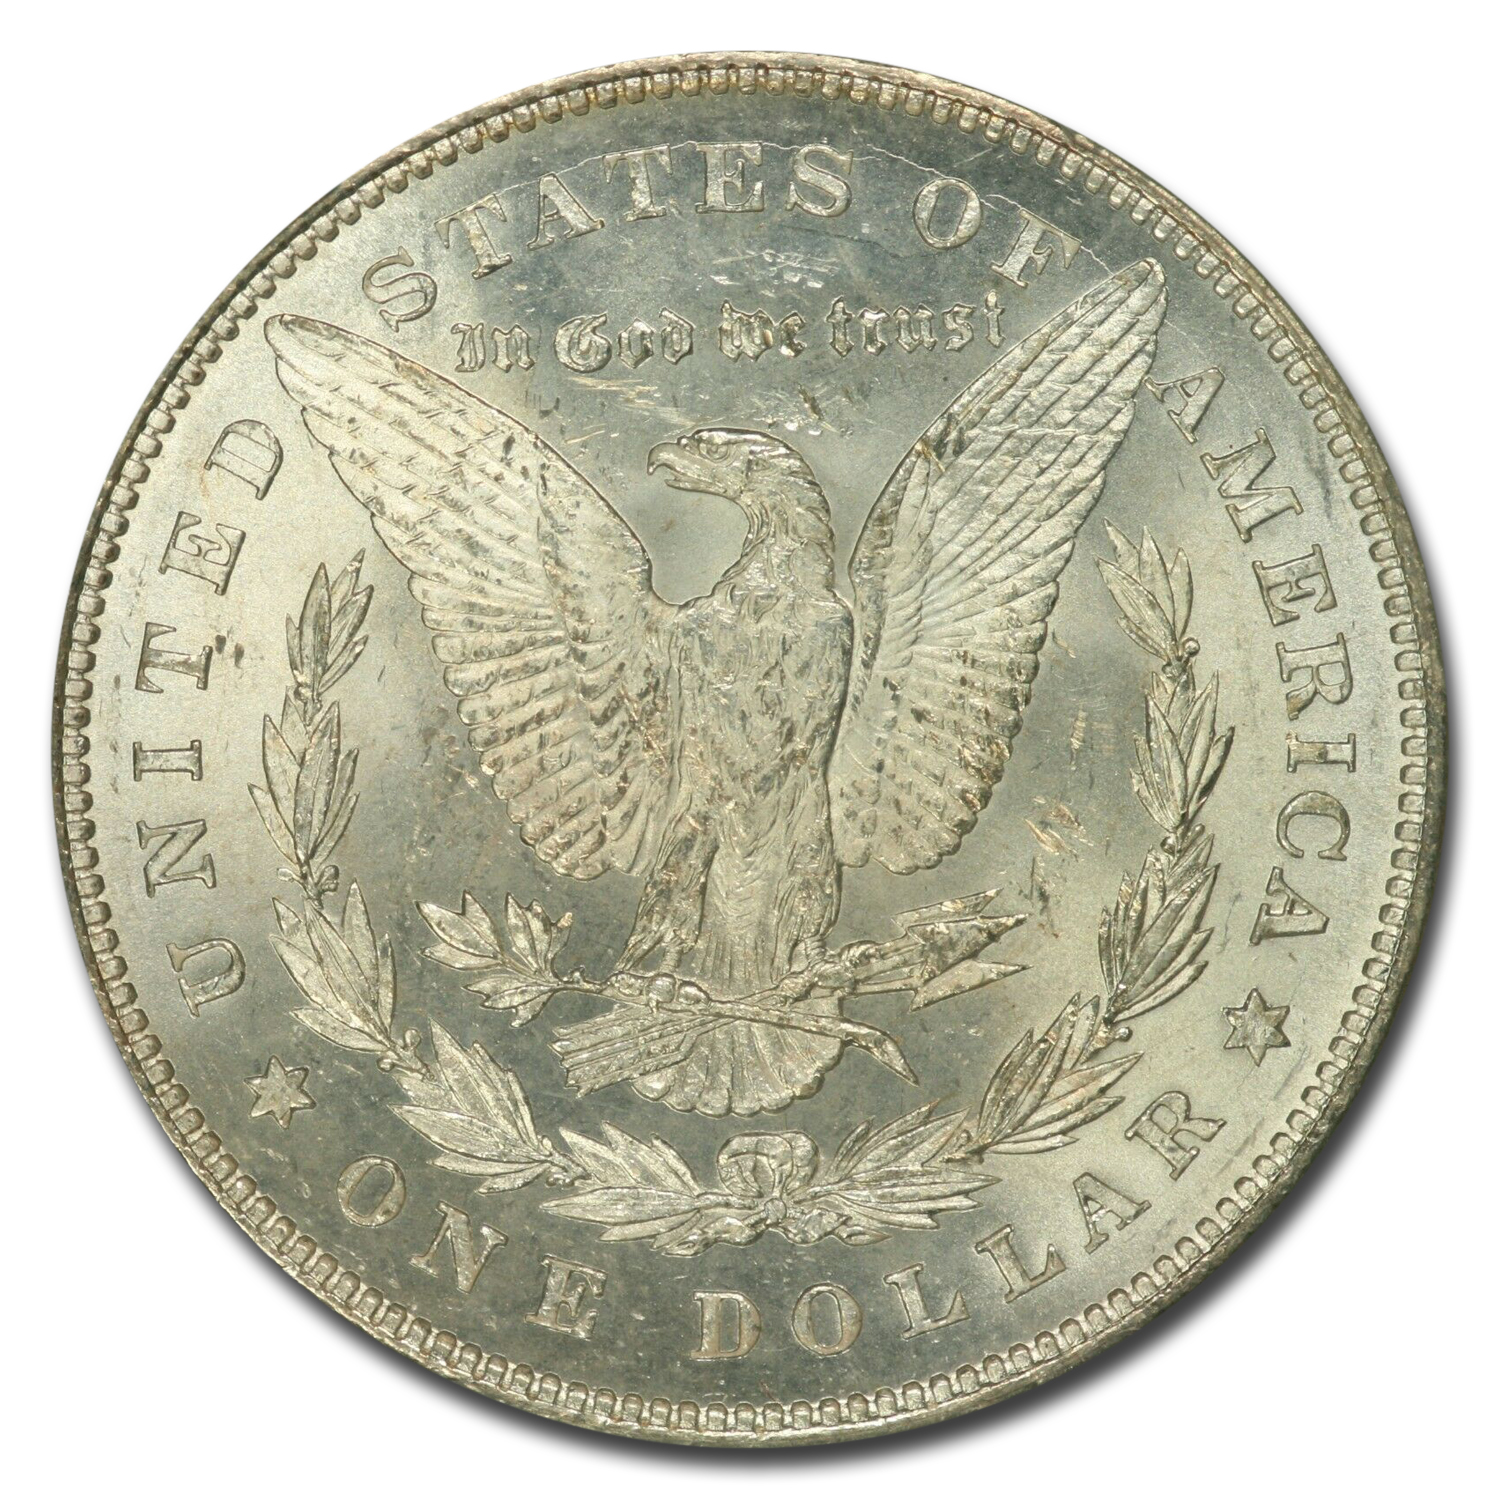 1878 Morgan Dollar 7 TF Rev of 78 MS-64+ Plus PCGS